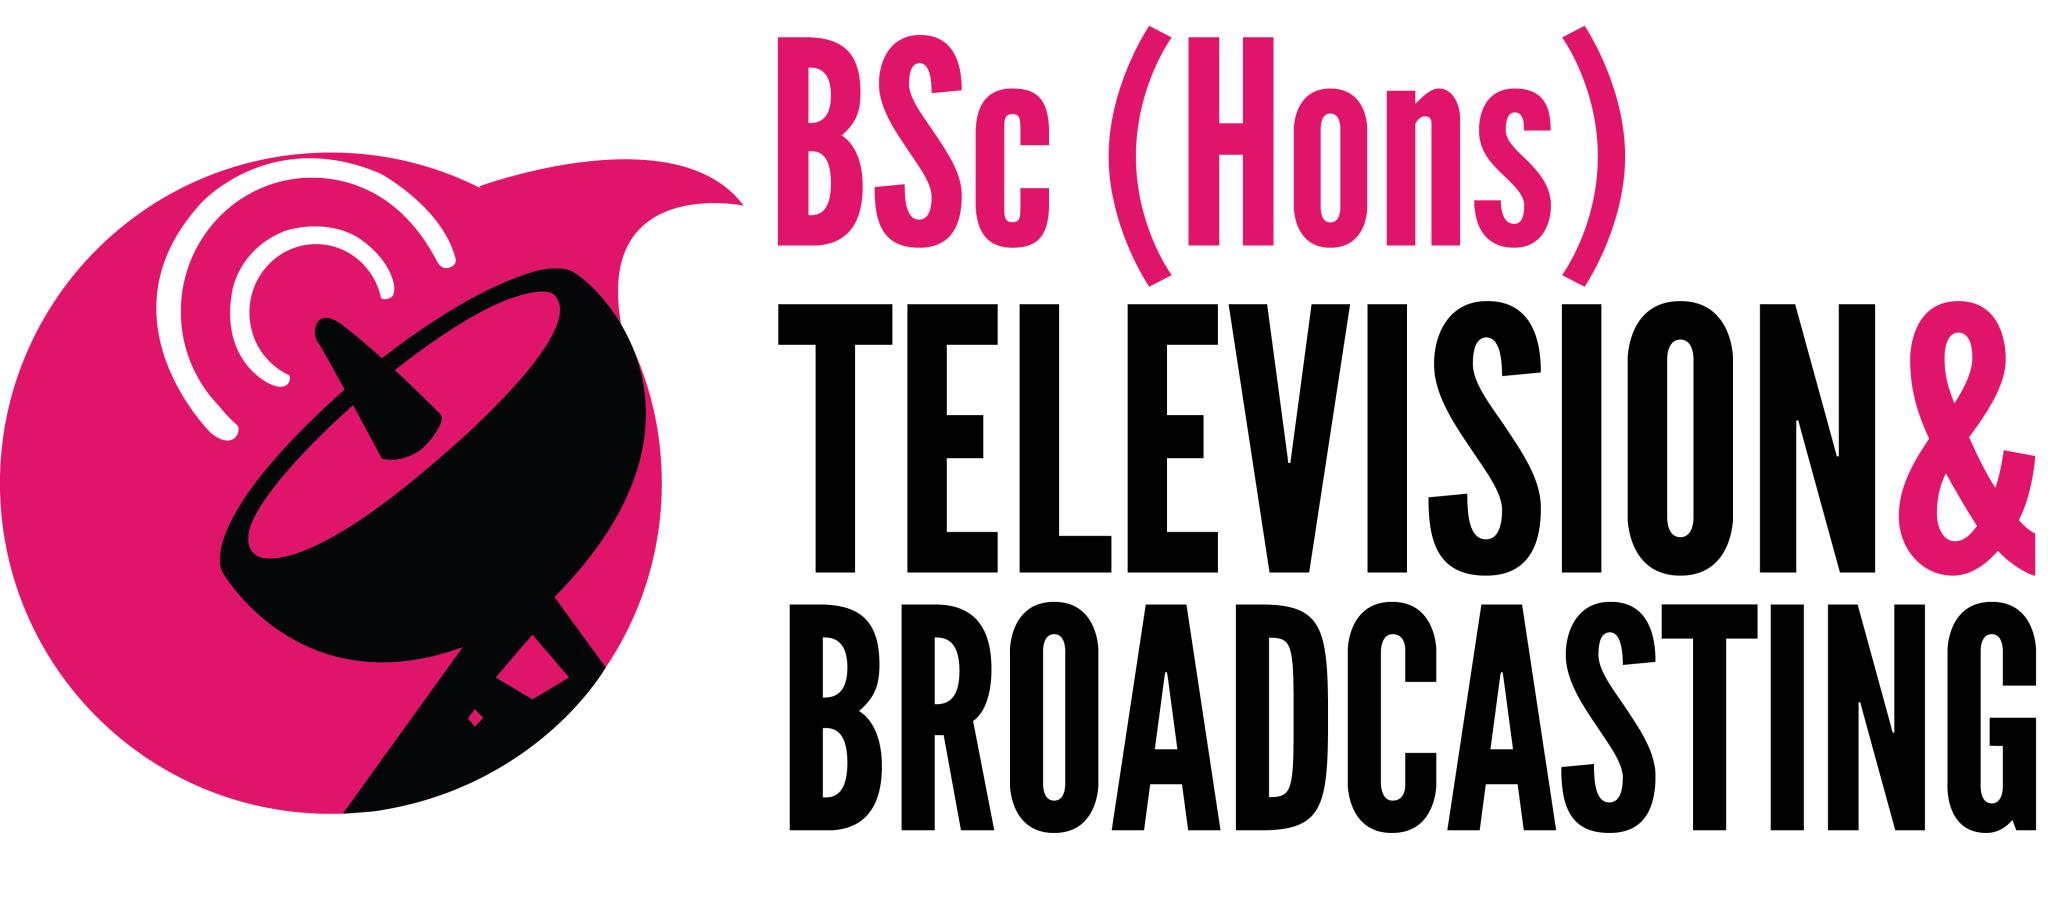 BSc (Hons) Television & Broadcasting